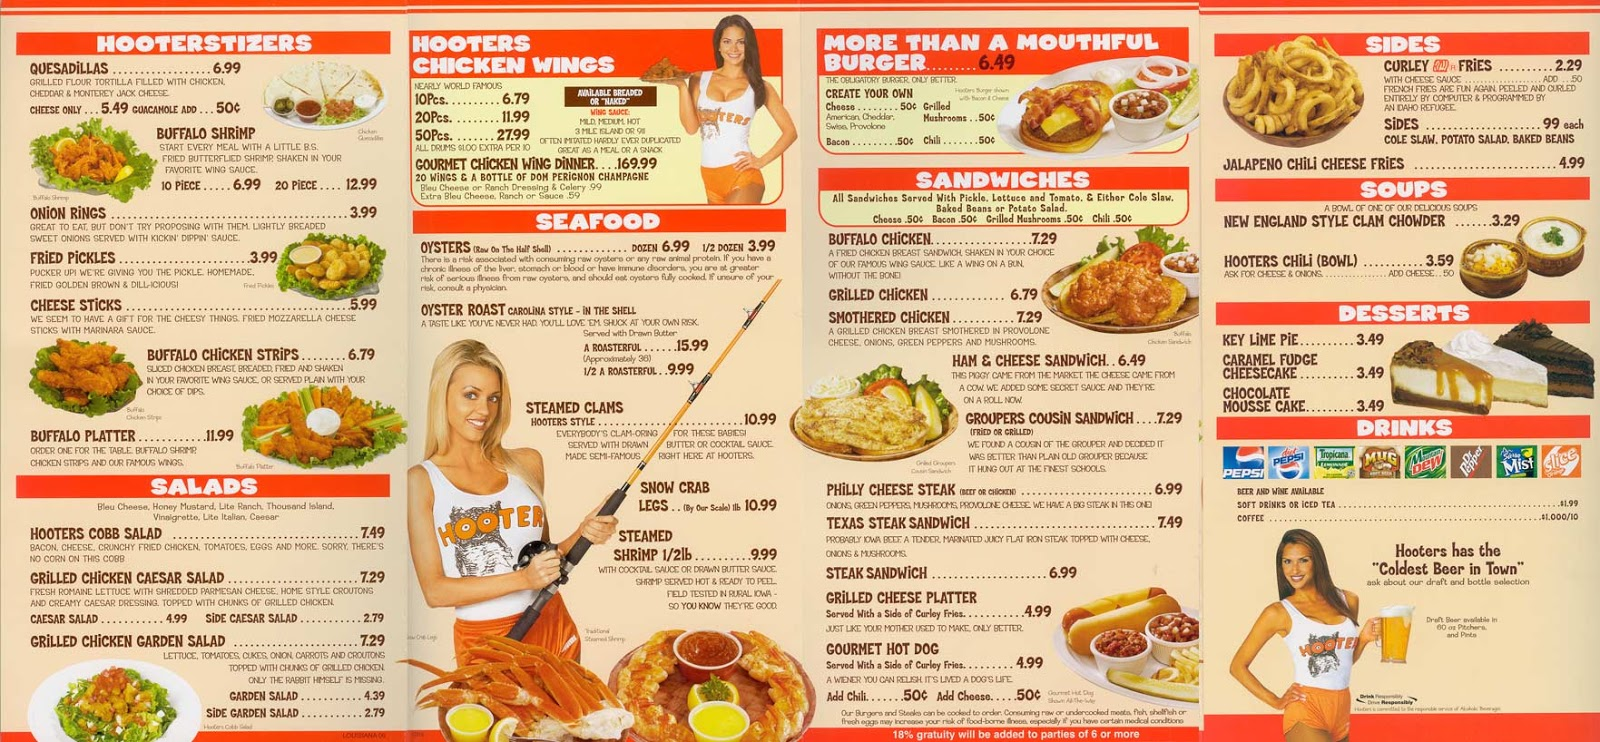 Is Hooters A Good Restaurant